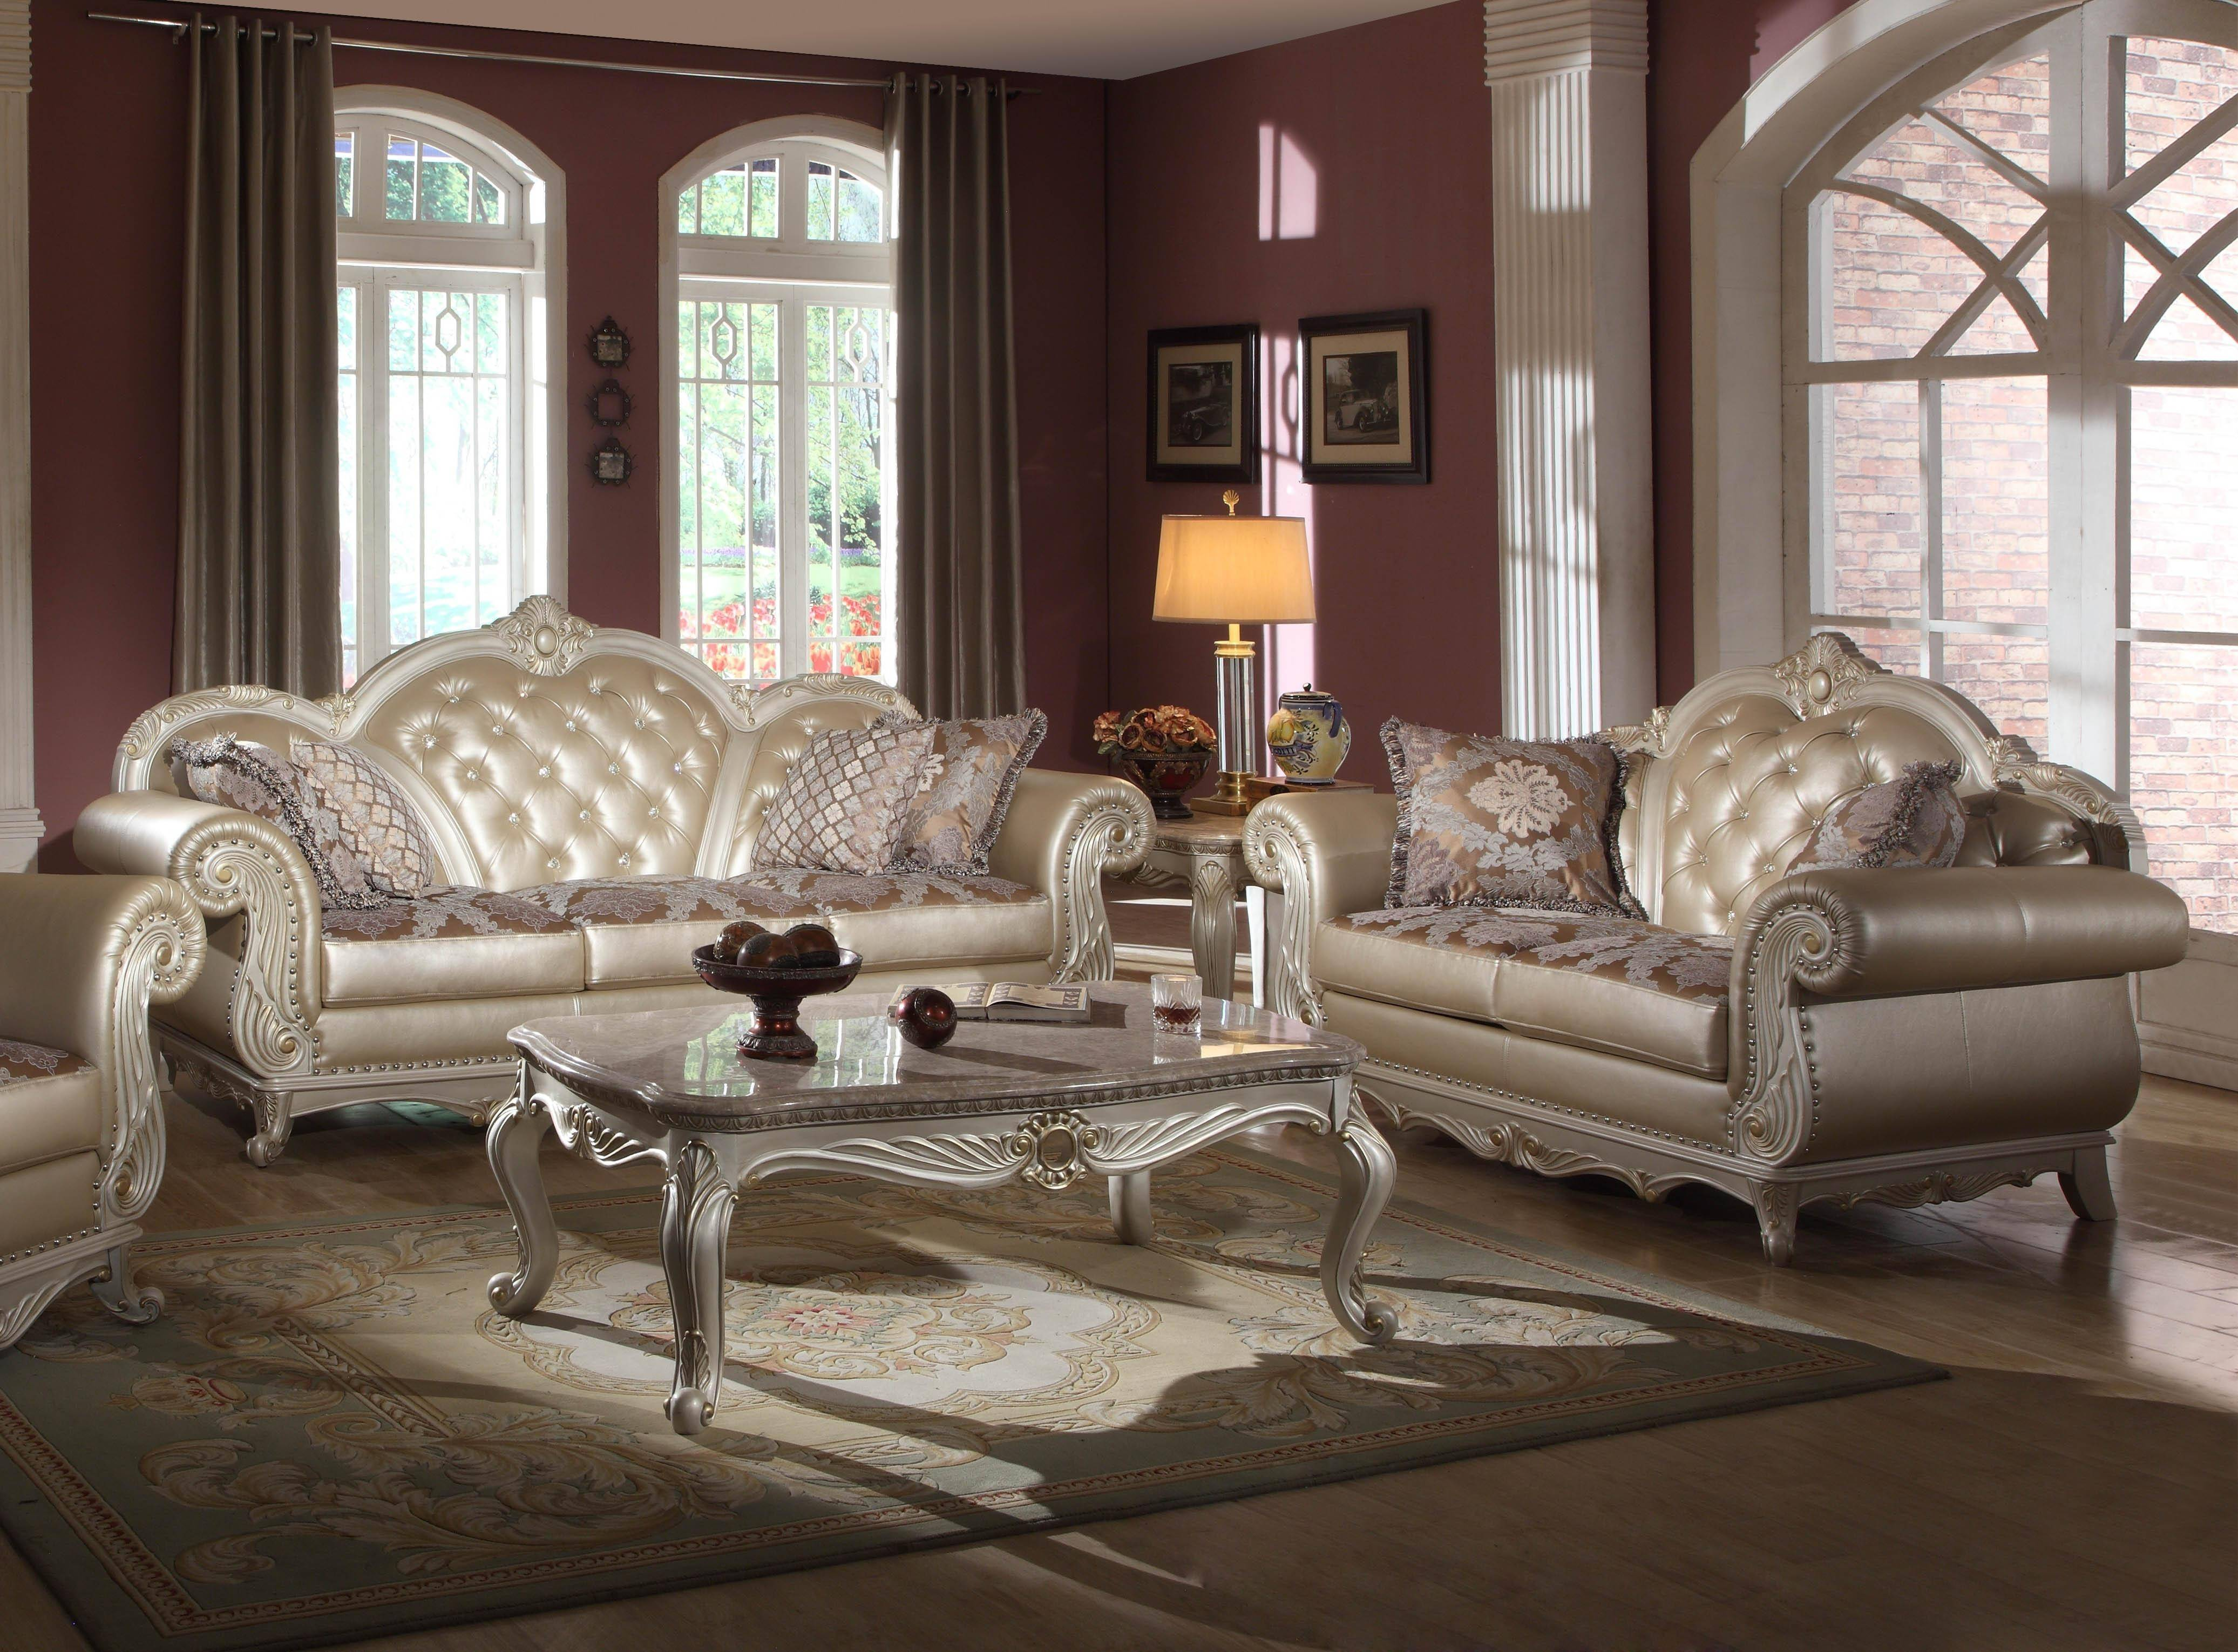 Meridian 652 Marquee Pearl White Living Room Sofa Set 2pcs